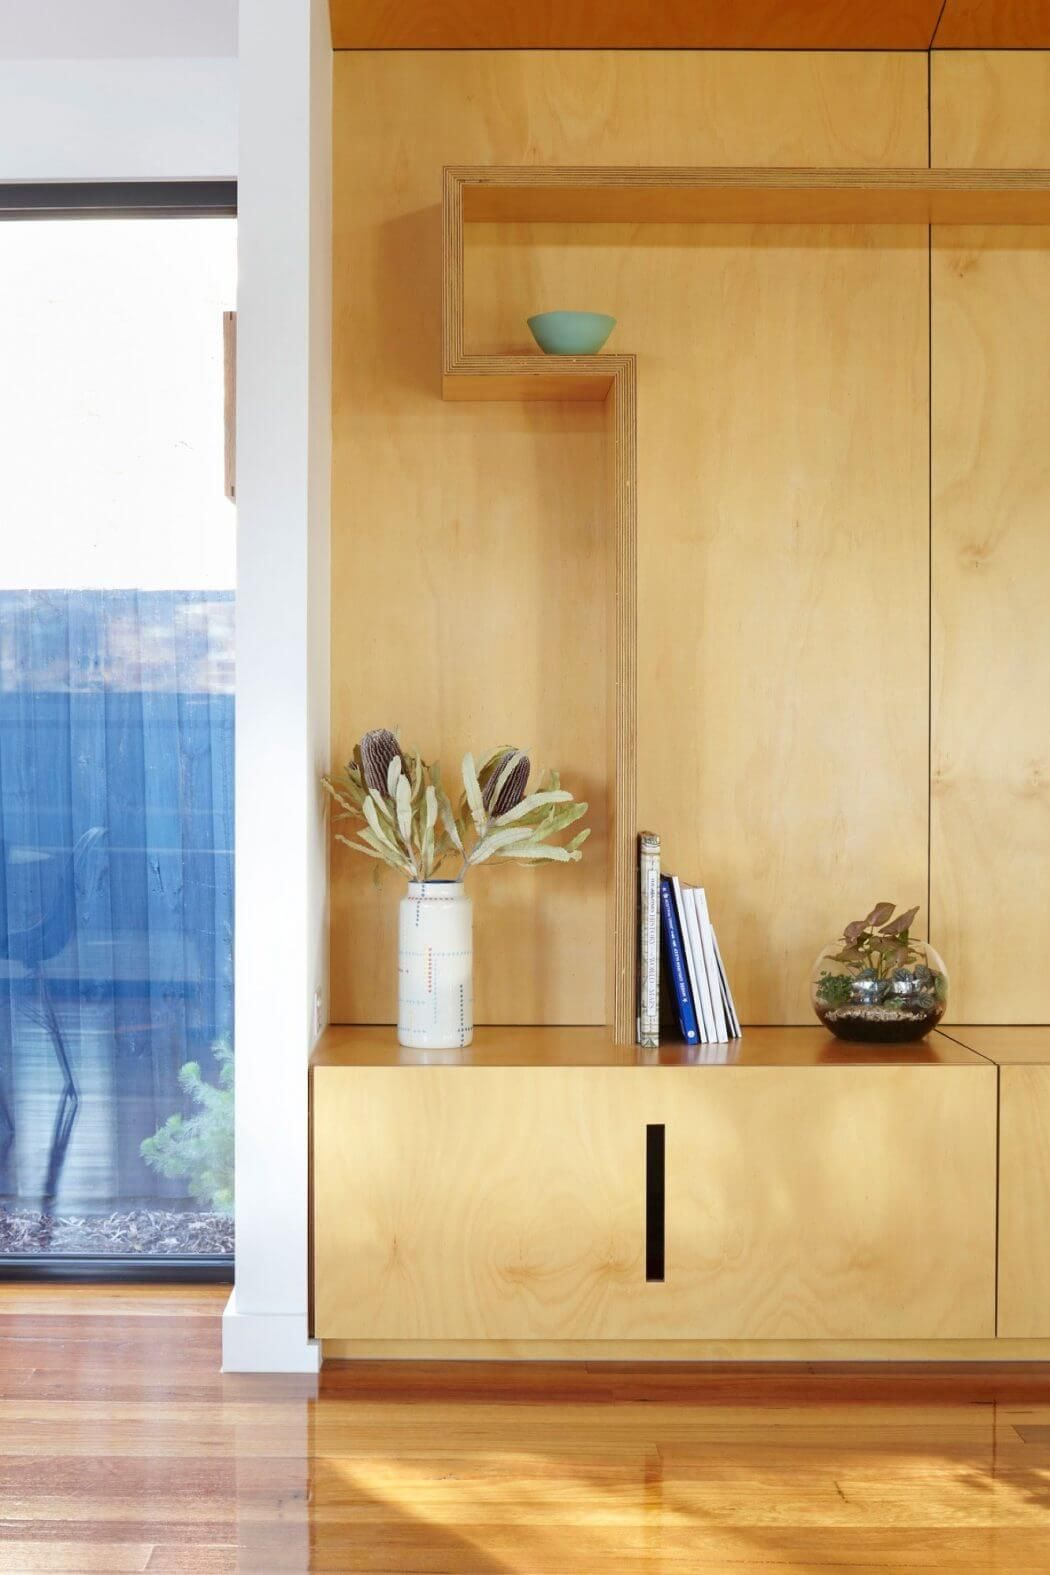 1940s Remodel by Nic Owen Architects | 1940s, Architects and ...